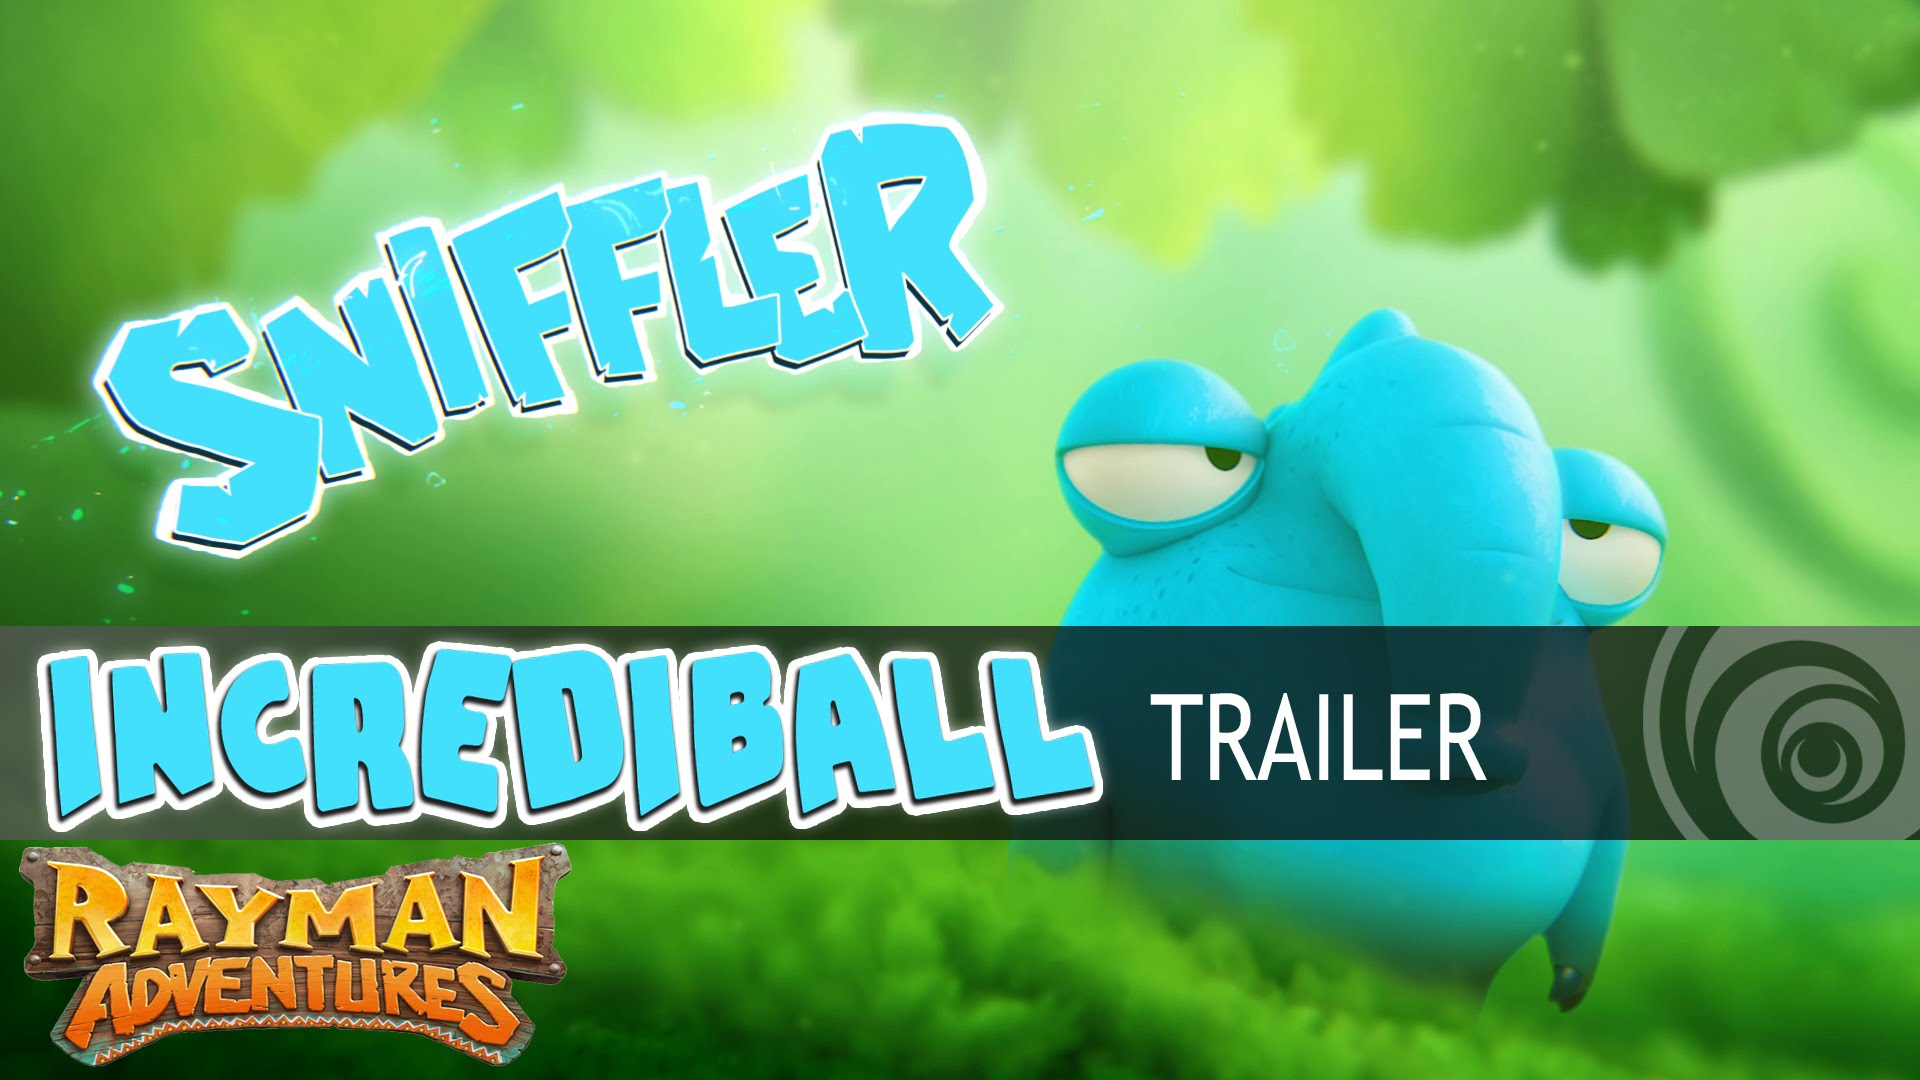 Rayman Adventures : Incrediball Trailer